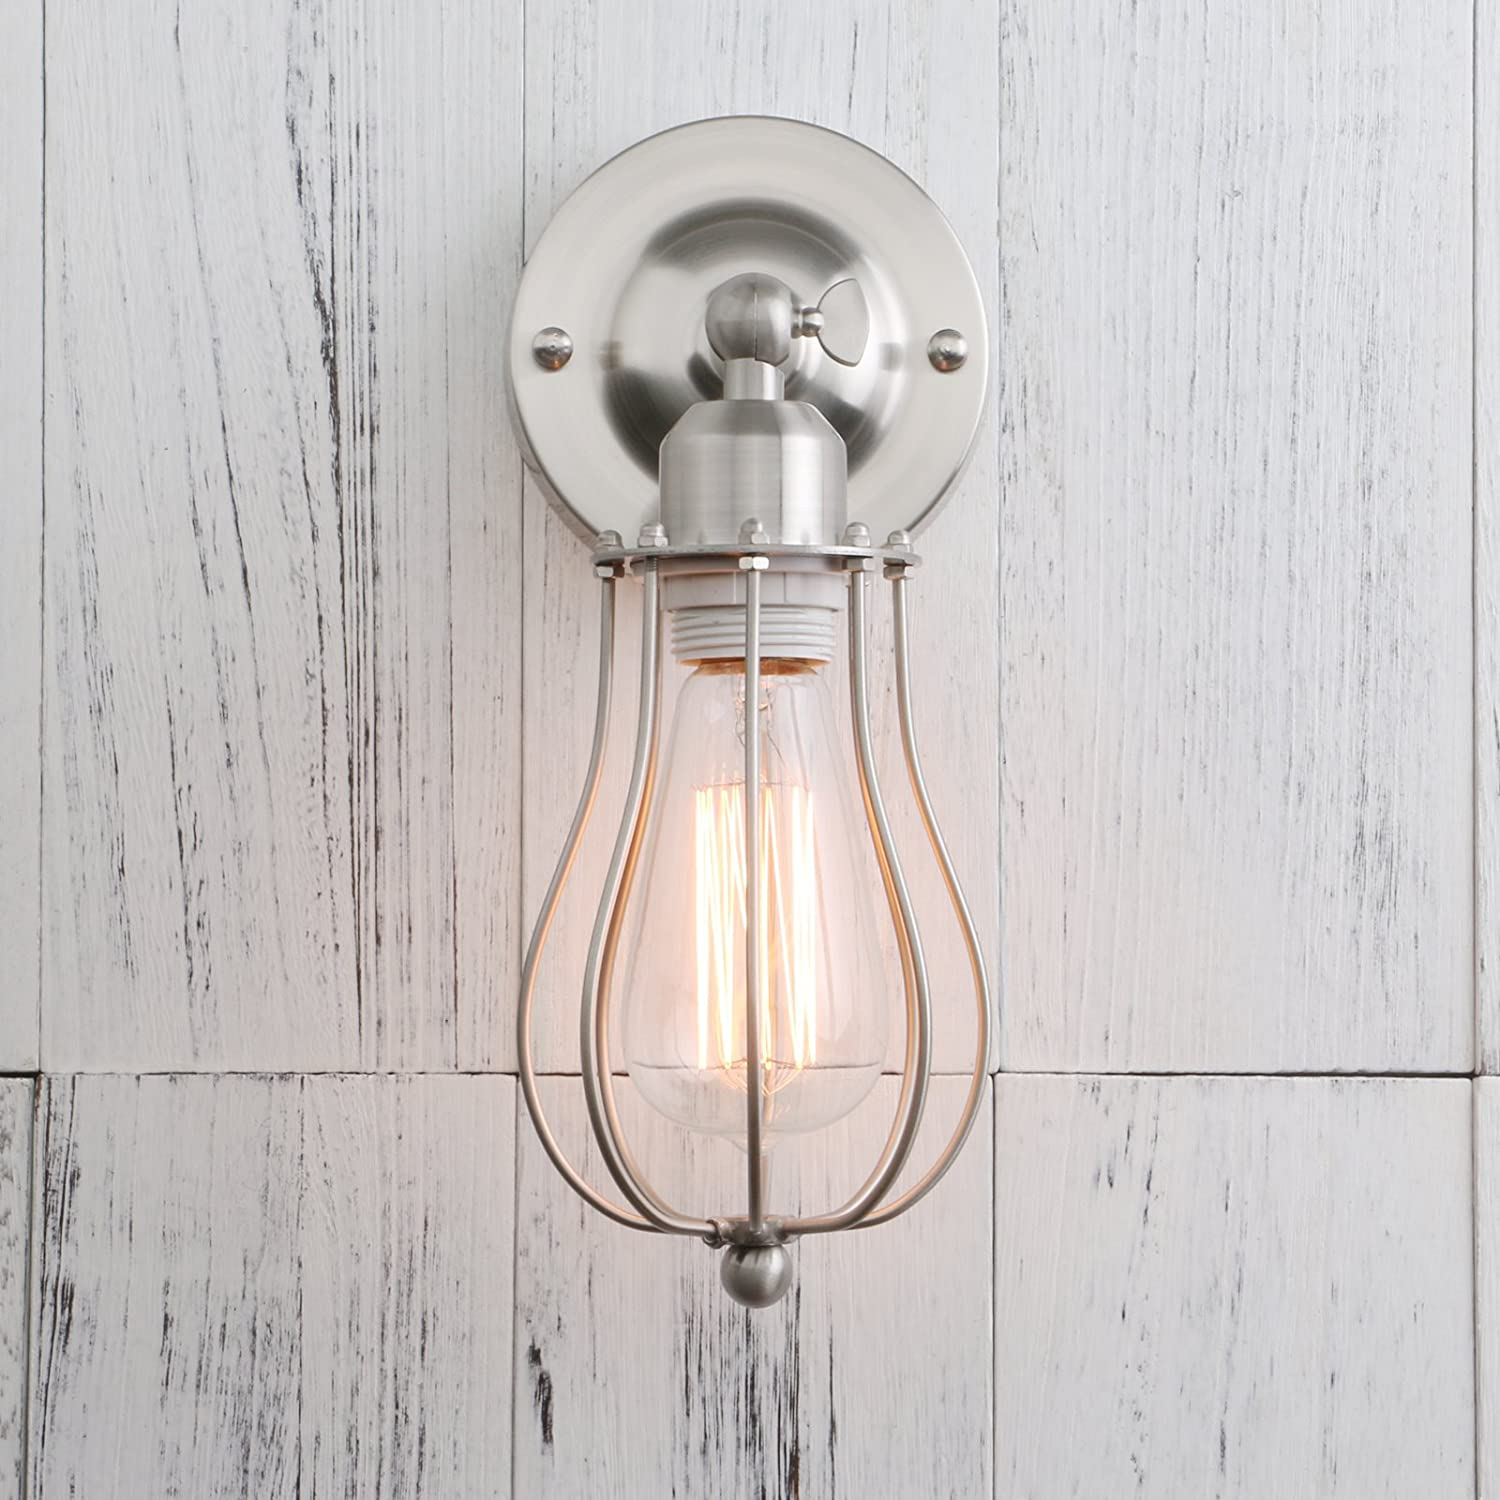 Permo Industrial Vintage Metal Wire Cage Wall Sconce Lighting Light Fixture Ceiling Mount Brushed